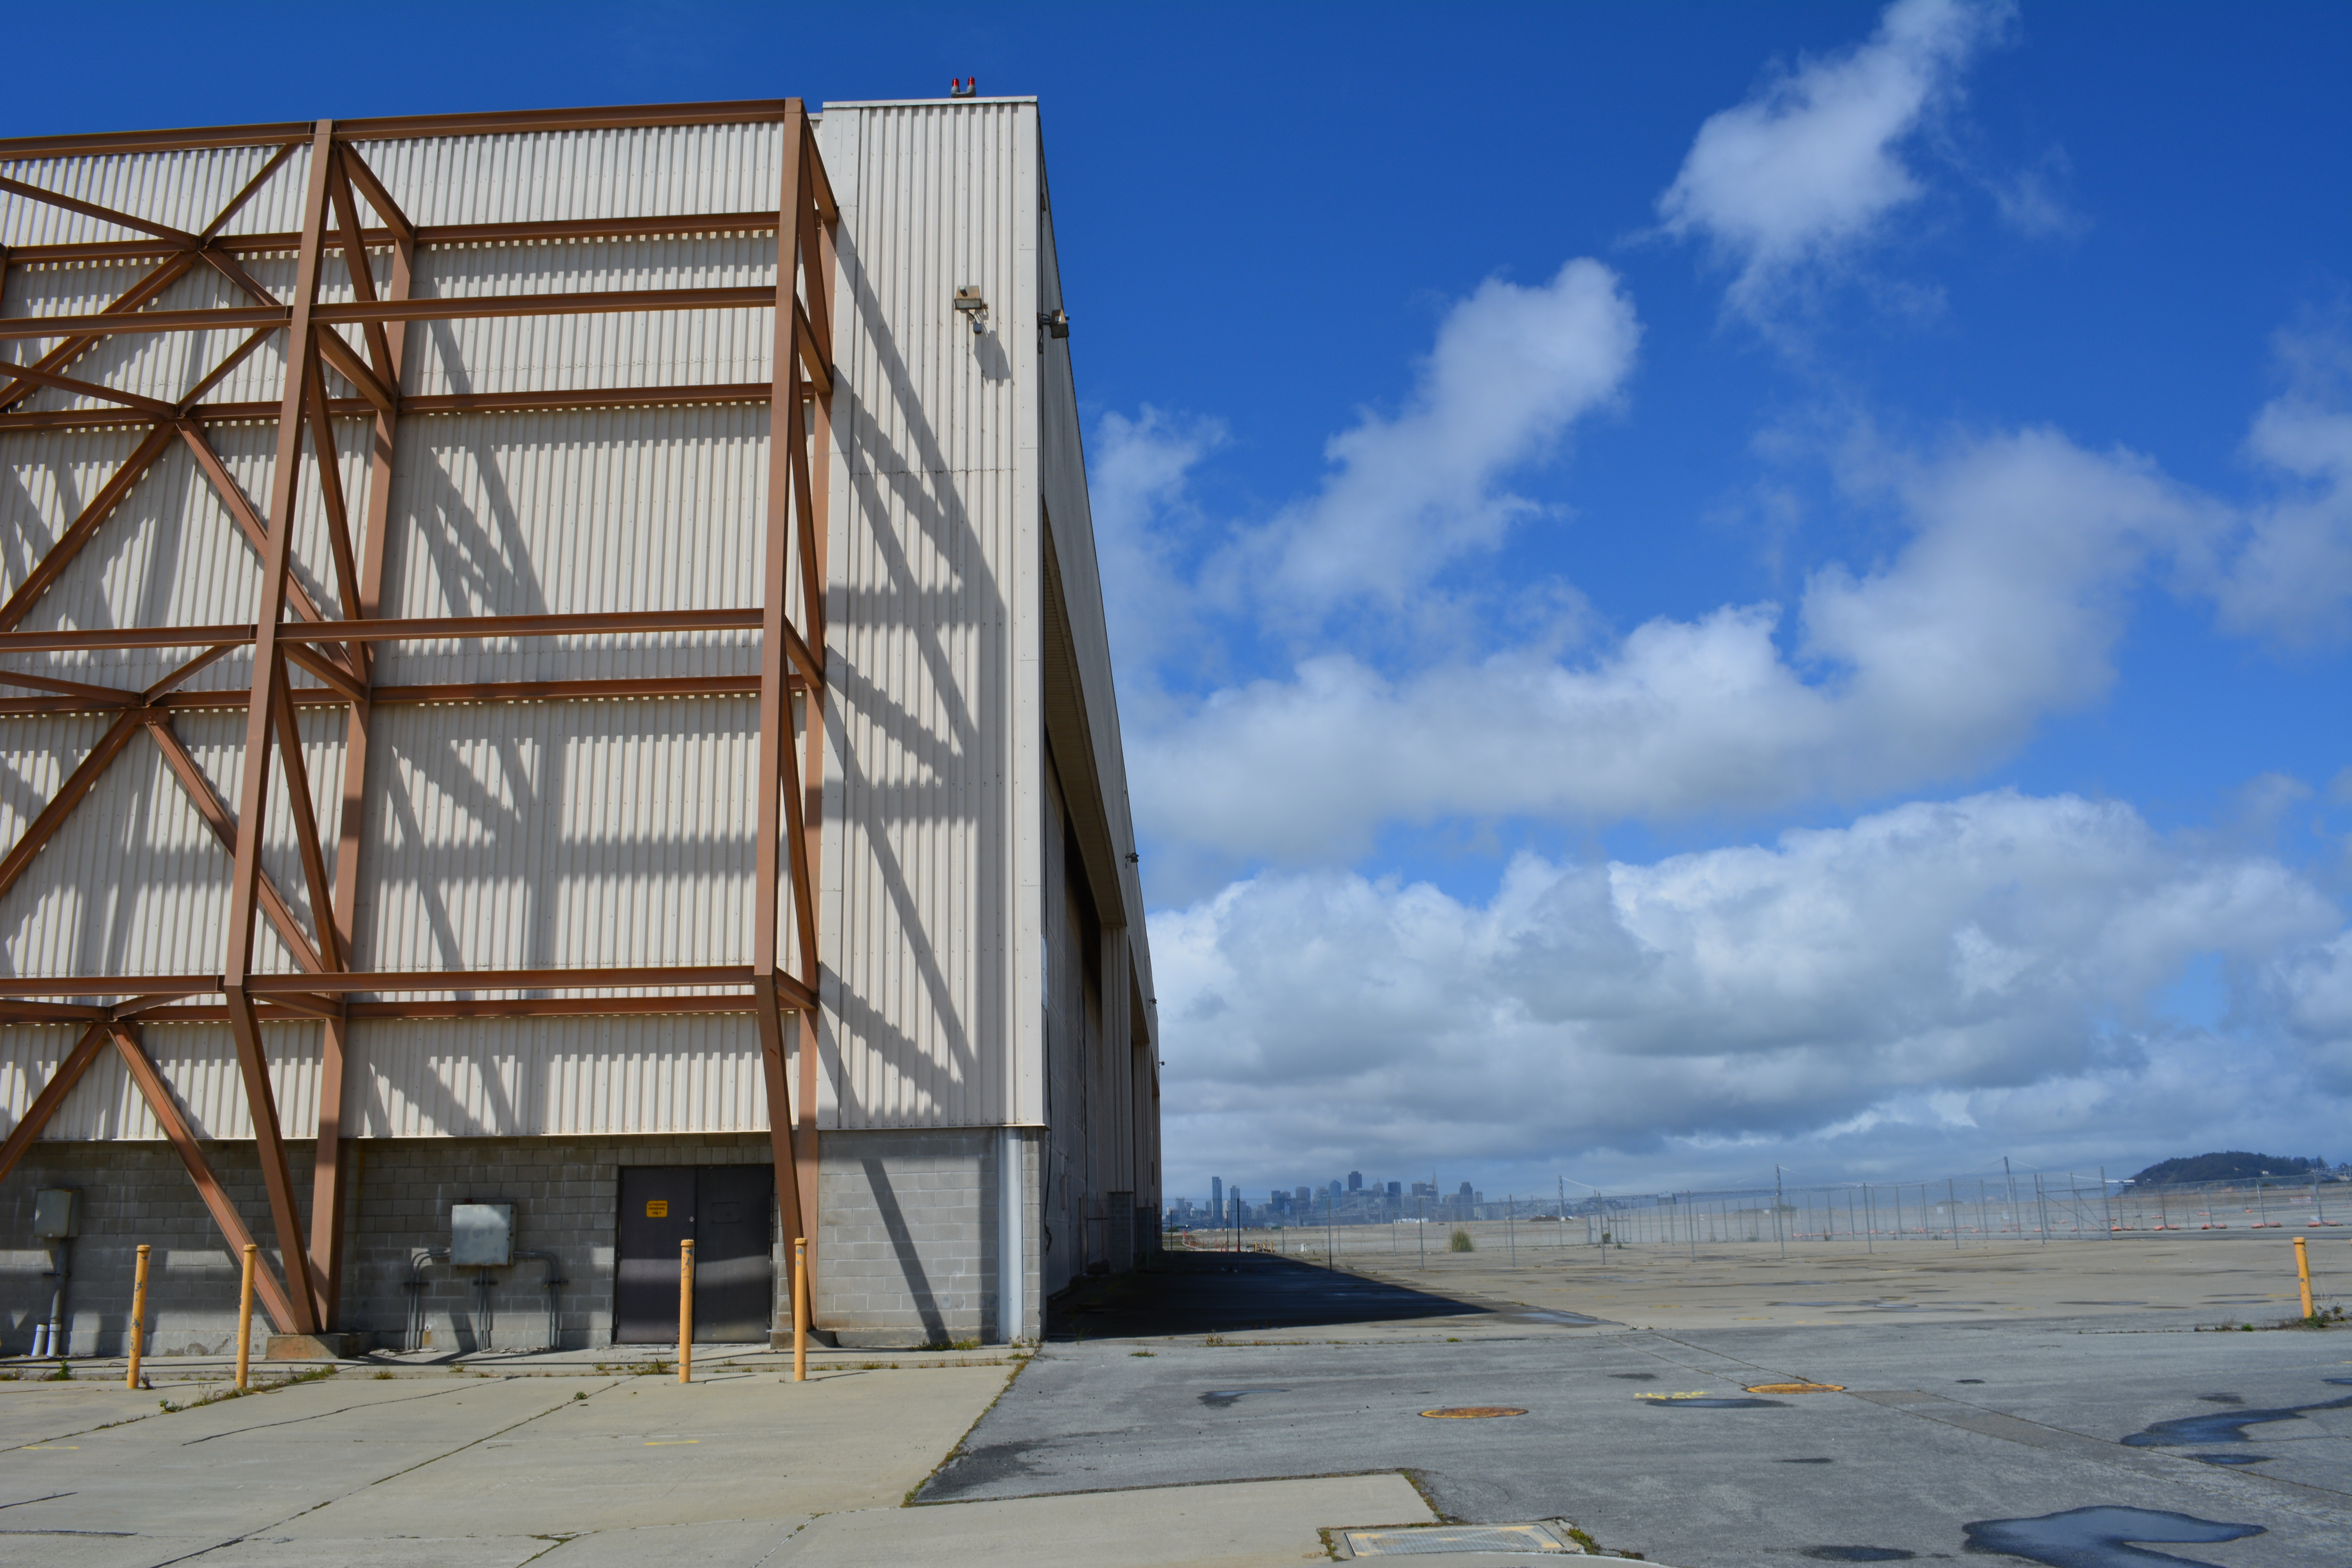 """55-foot tall """"Building 25"""" that will be protected by a levee, and remind campers that they are on an old military industrial site, as they gaze at the night stars."""